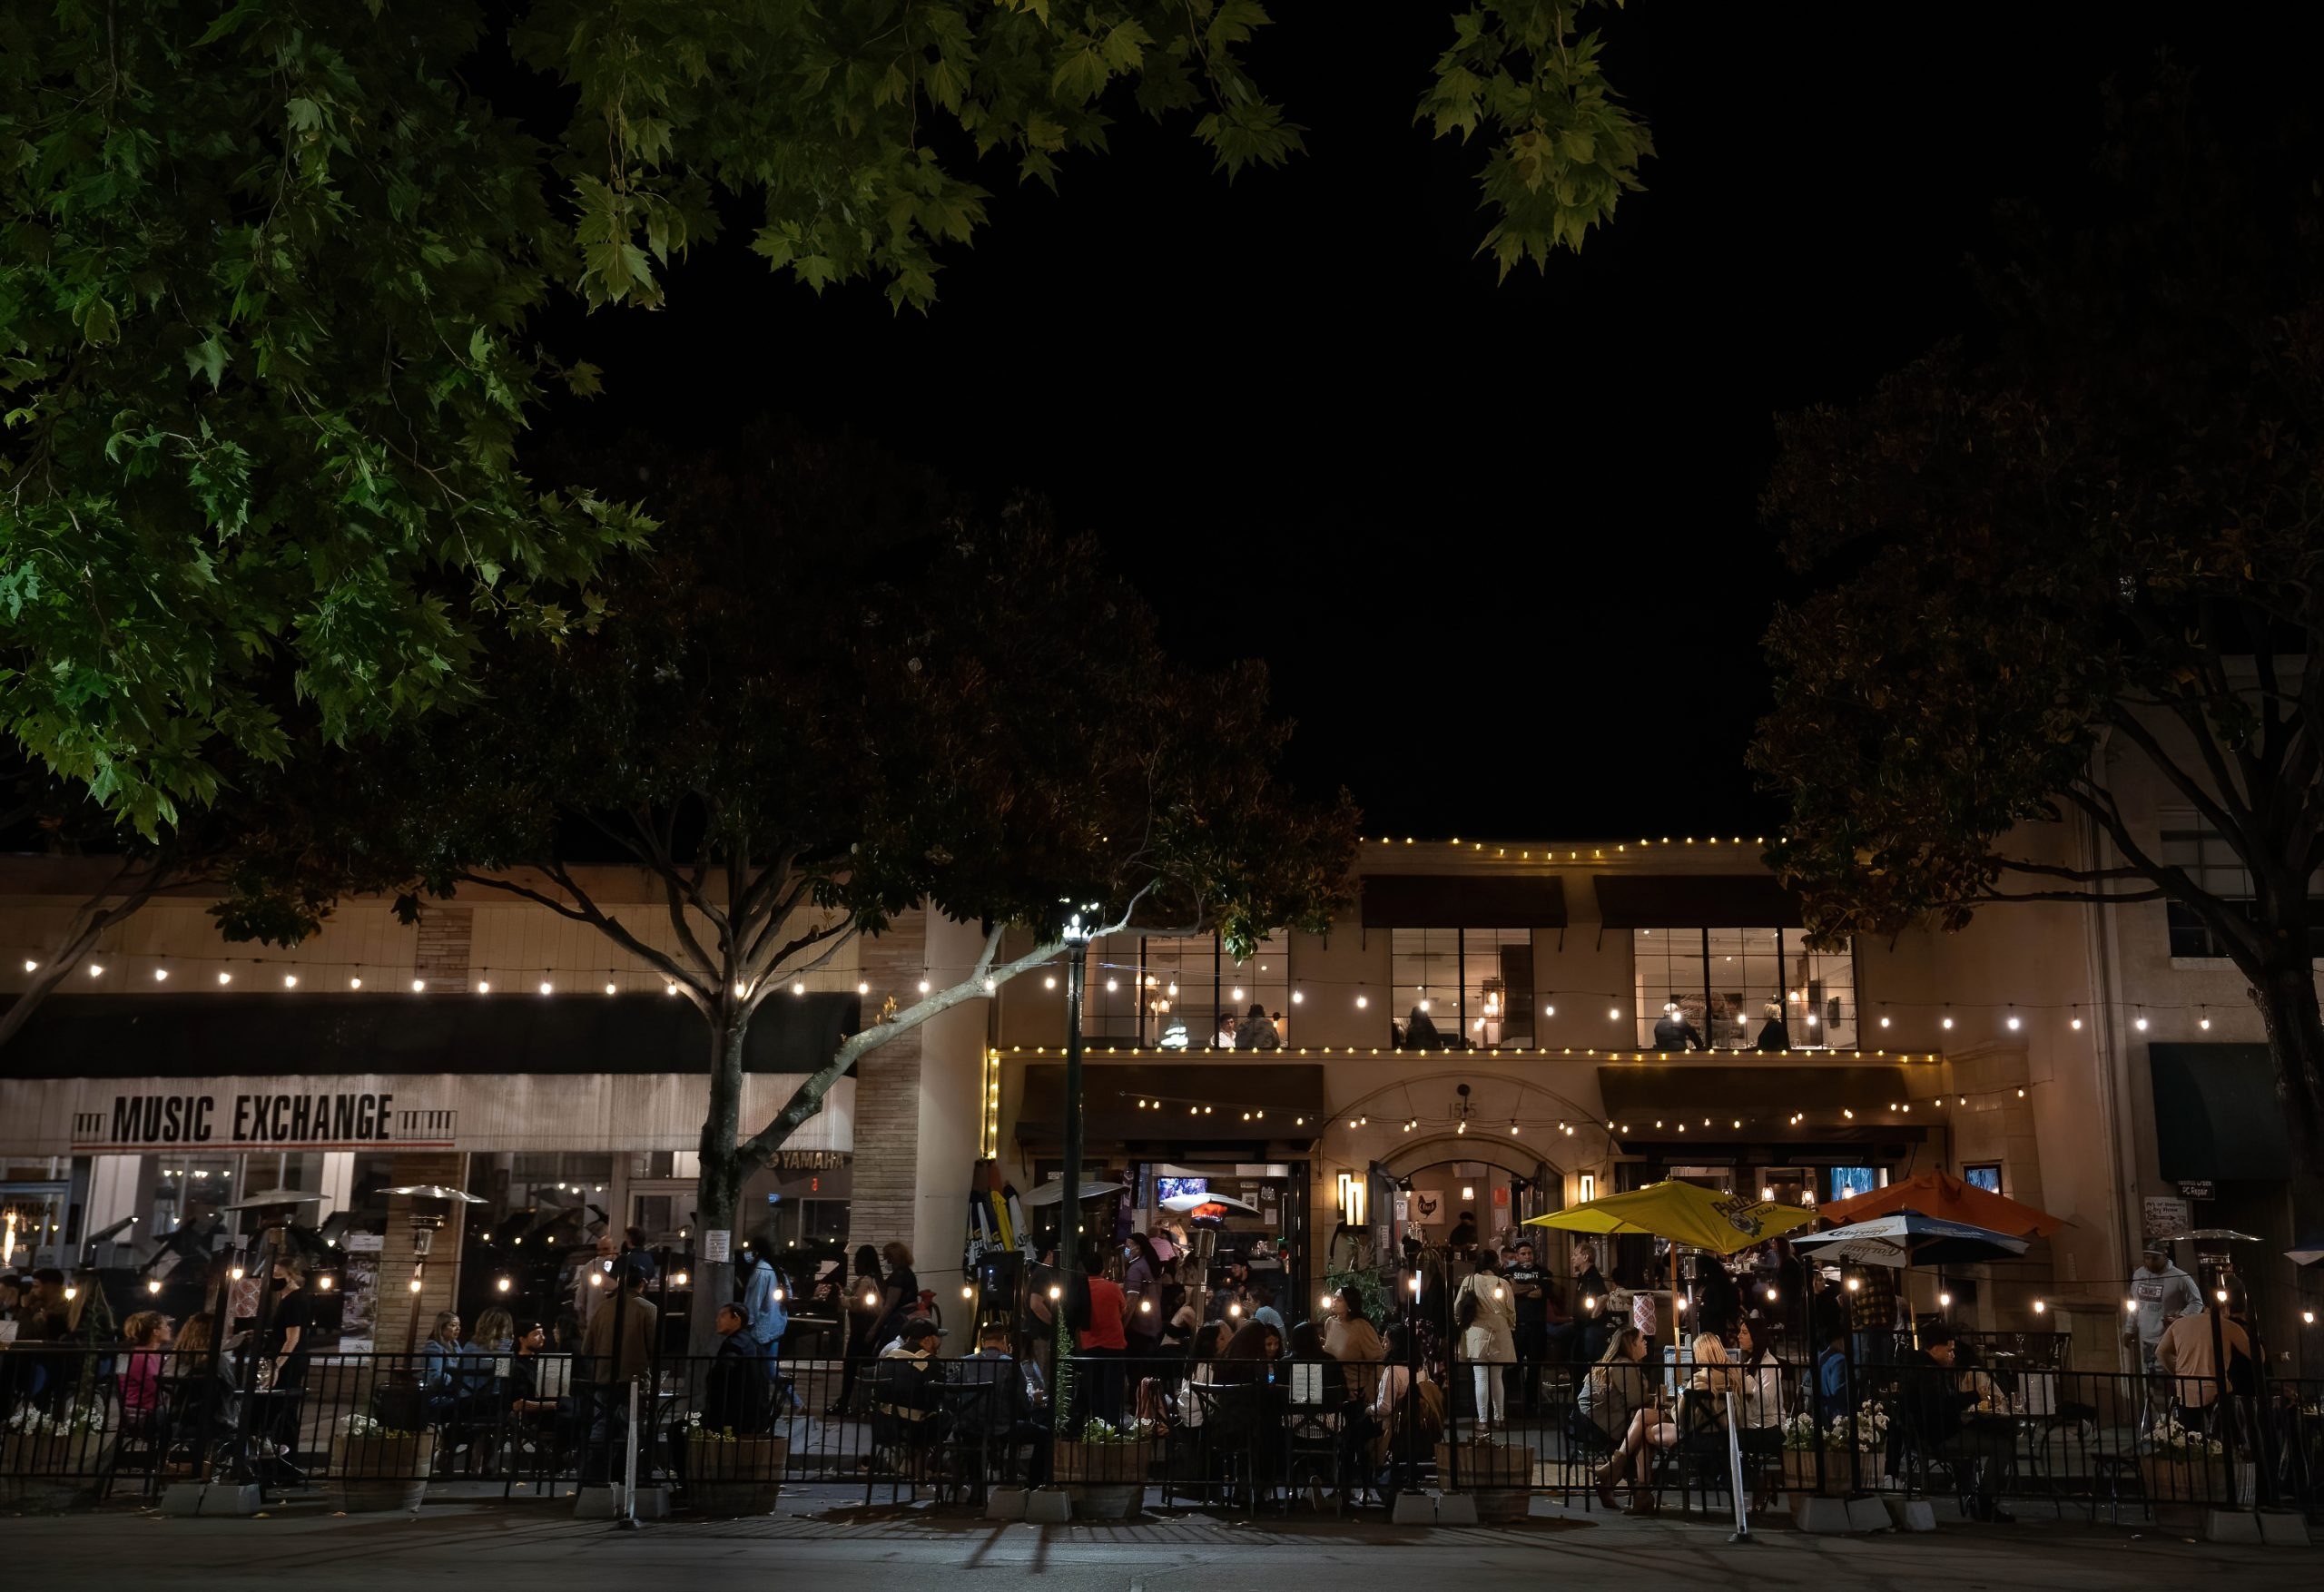 Walnut Creek restaurant owners, managers cautiously optimistic as industry fully reopens